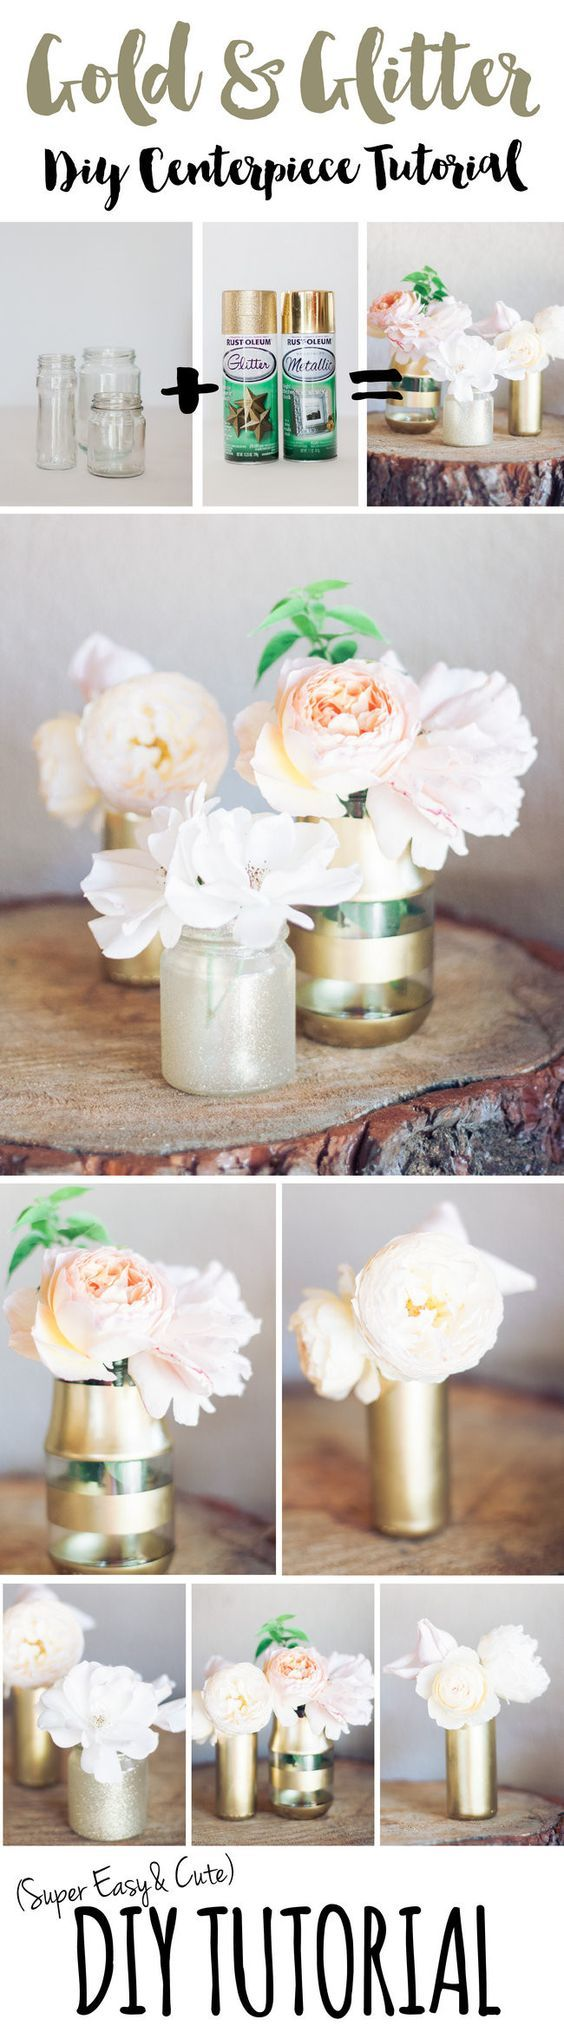 Easy and super stunning DIY Gold Glitter Bottle to Vase Tutorial. Makes stunning wedding centerpieces / http://www.himisspuff.com/diy-wedding-centerpieces-on-a-budget/36/